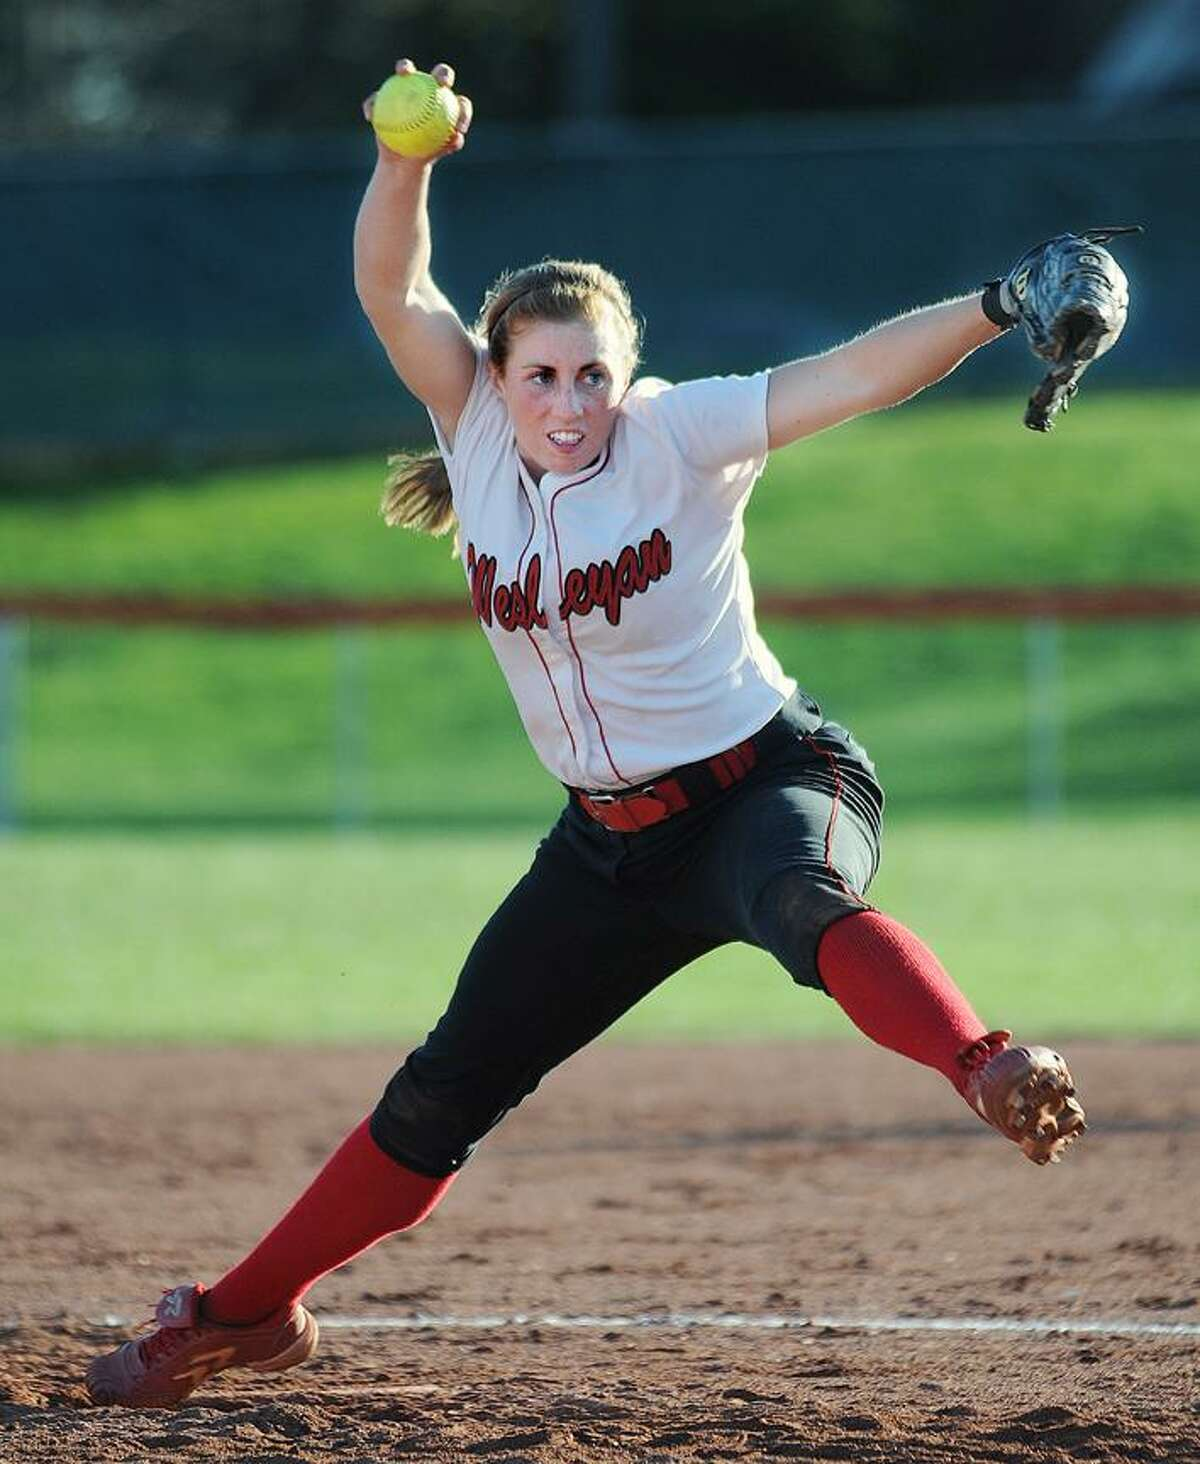 Catherine Avalone/The Middletown Press Wesleyan junior Laura Getchell of Raymond, Maine on the mound against in Wednesday's double header against Trinity College. The Cardinals defeated Trinity 6-3 in Middletown. Getchell's record improves to 8-4.